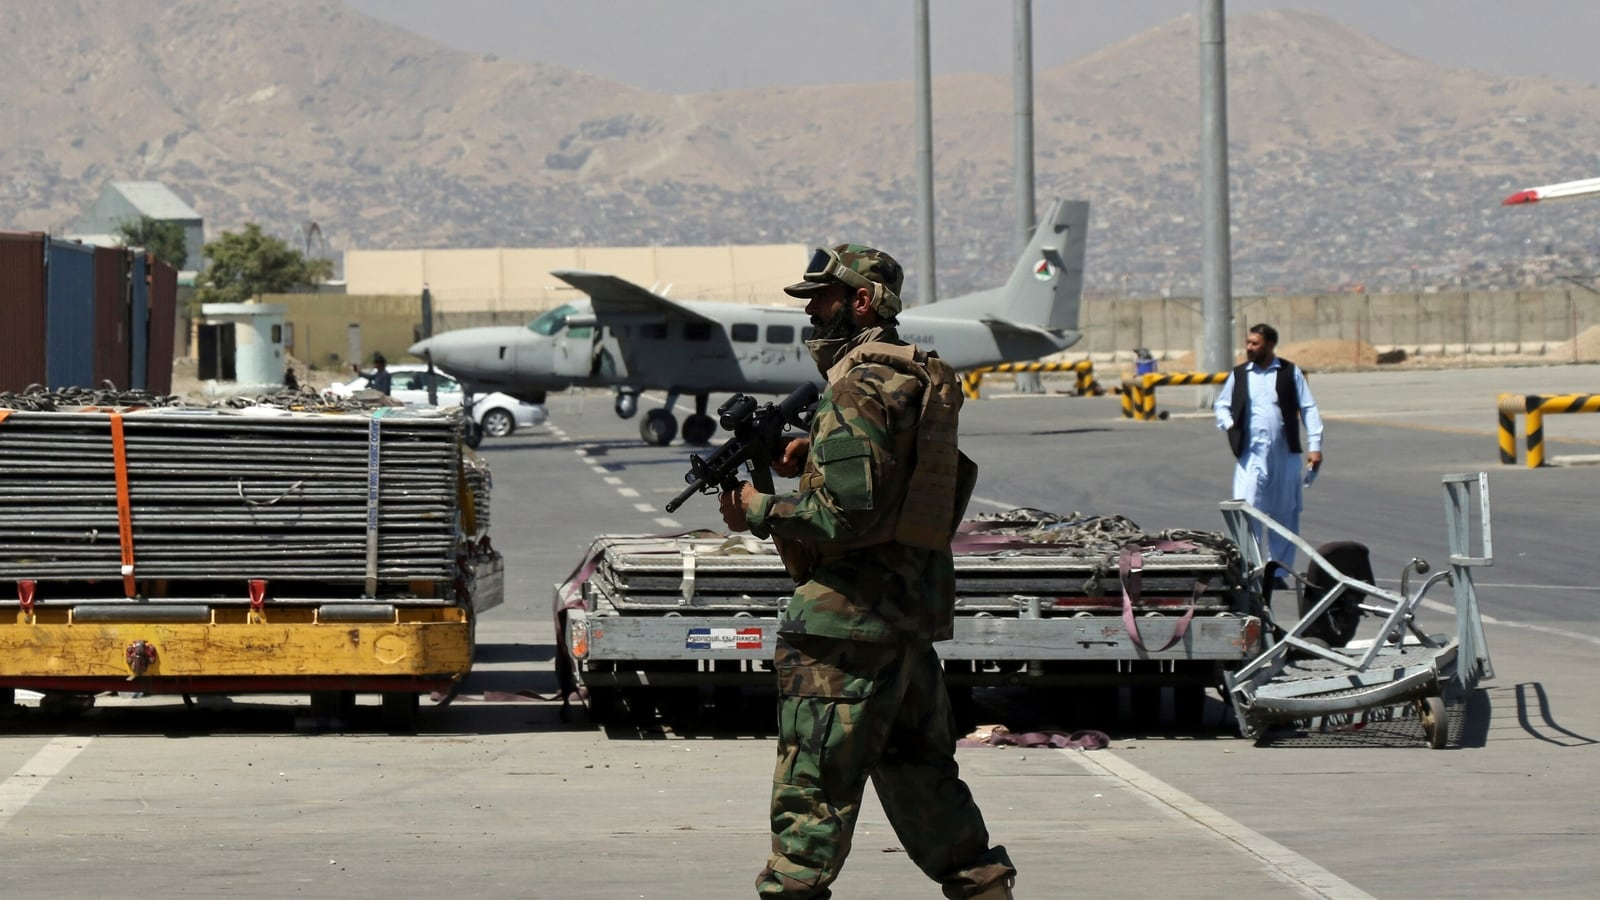 """US says Taliban was """"Businesslike, Professional"""" in first evacuation from Afghanistan"""